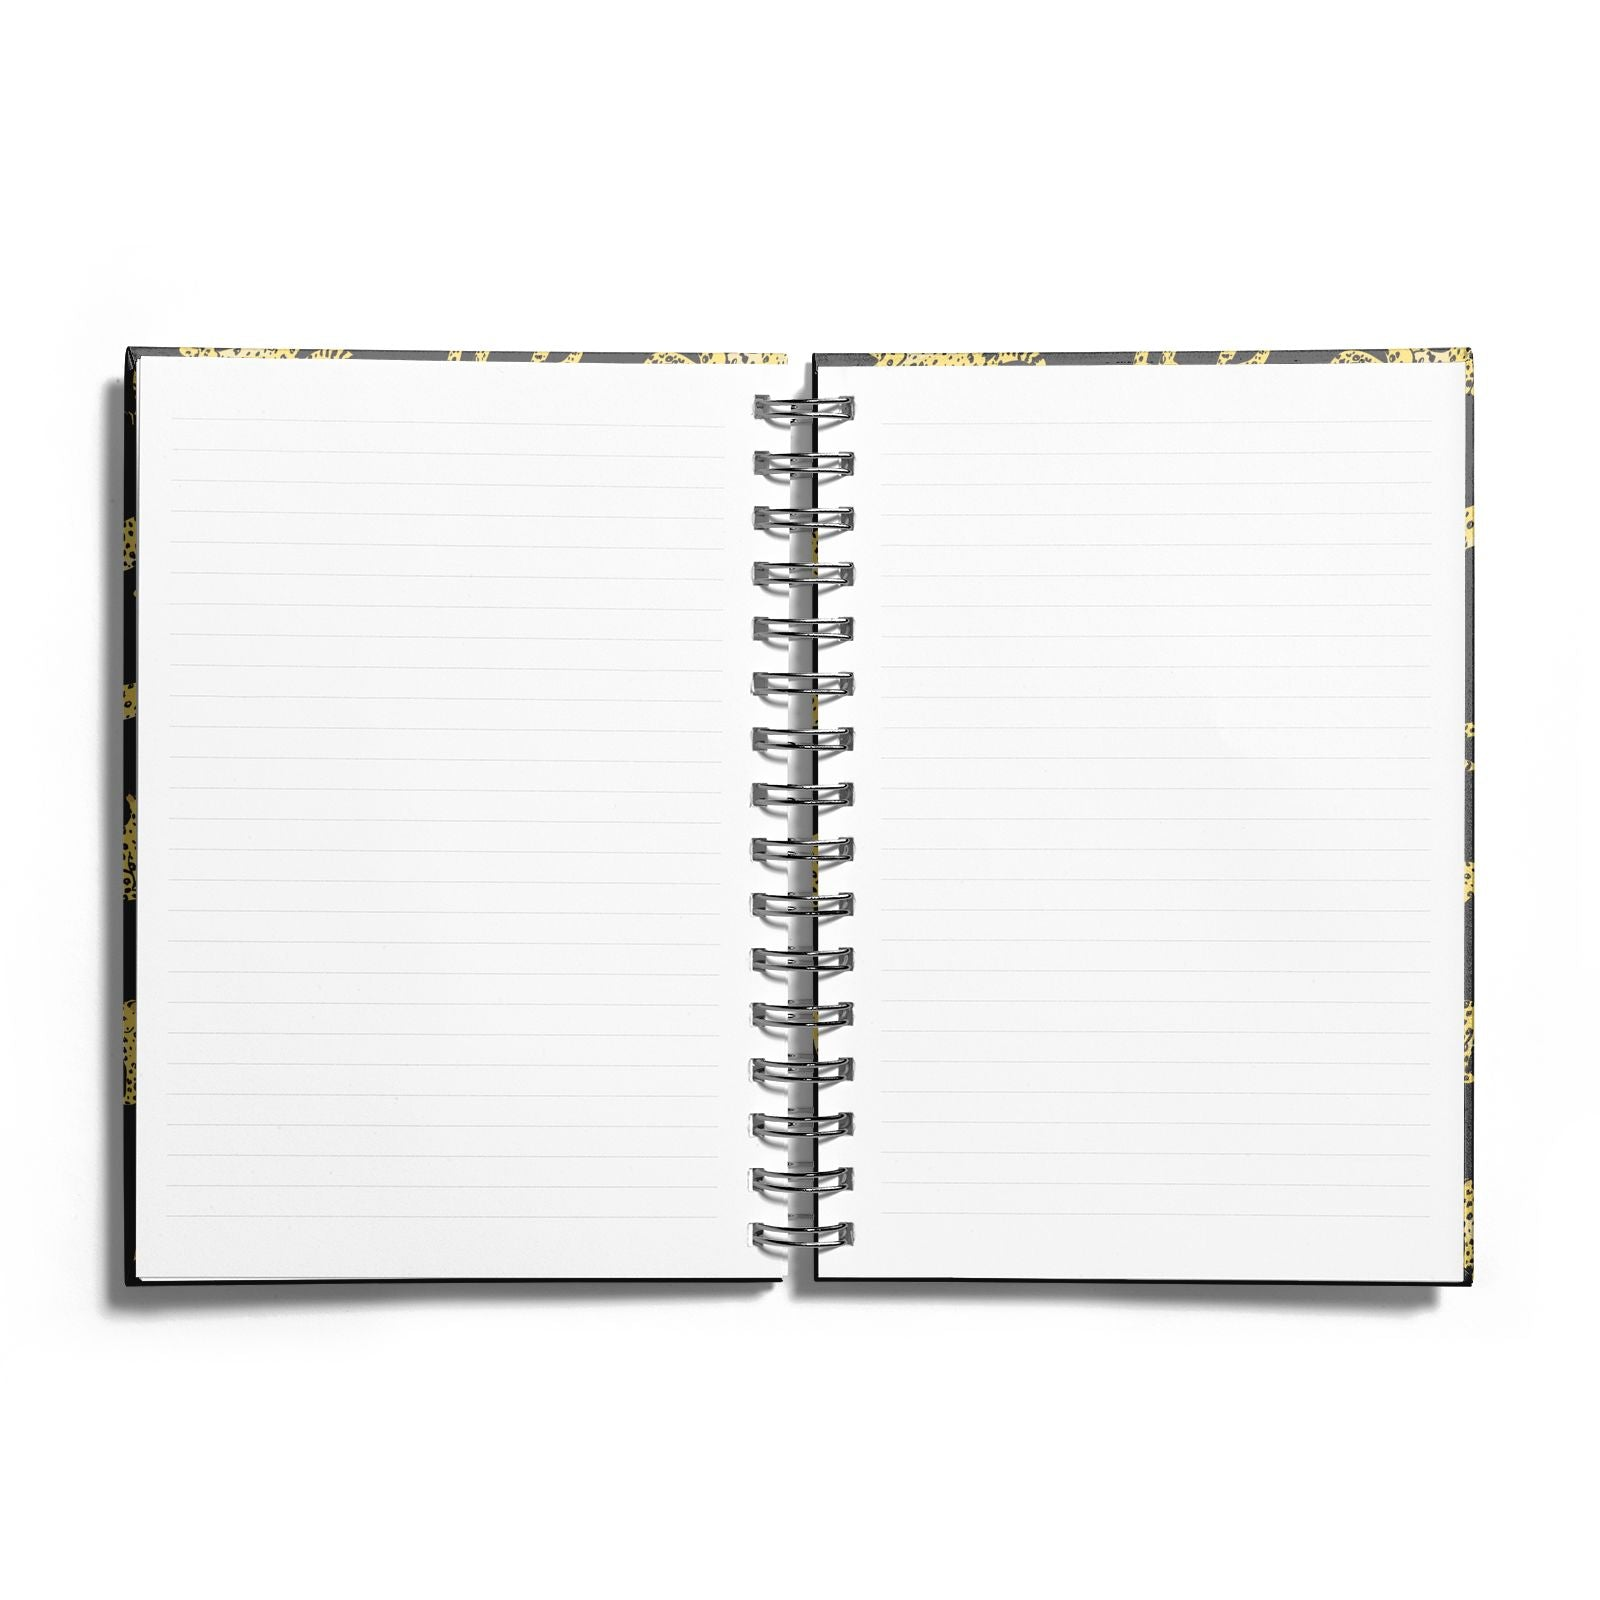 Prowling Leopard Notebook with Silver Coil and Lined Paper